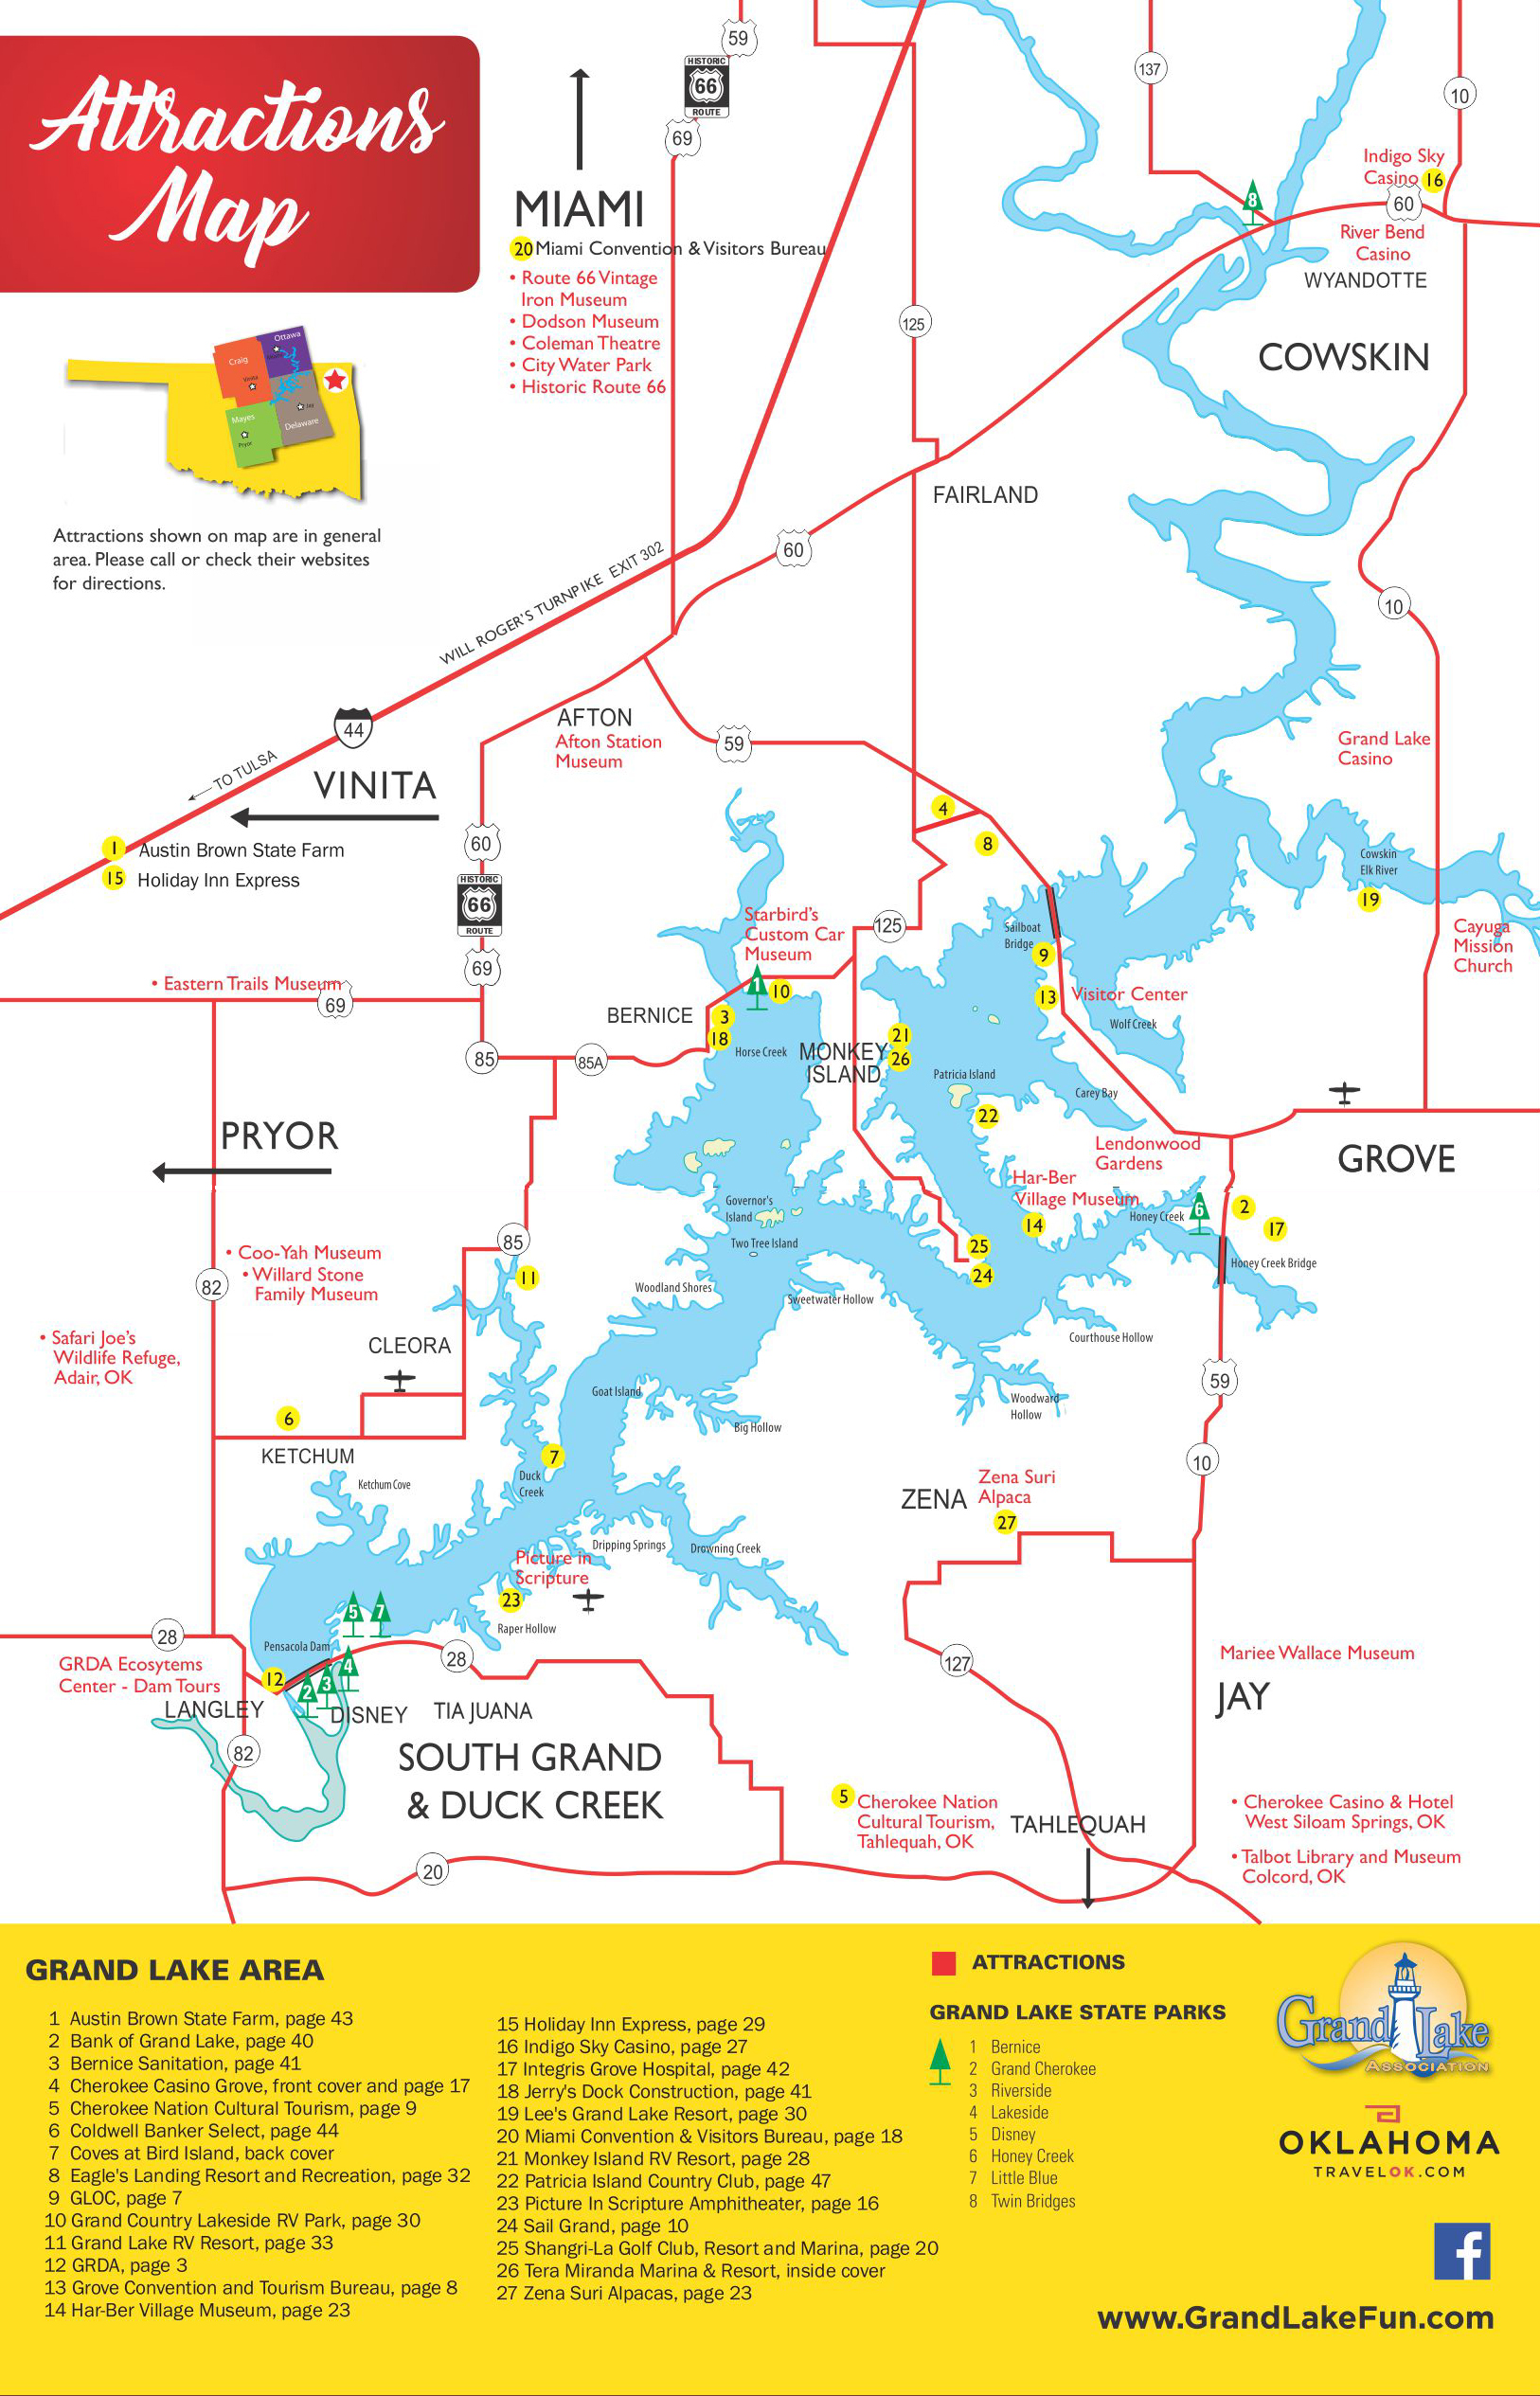 Fabulous Map - Grand Lake Association JQ46